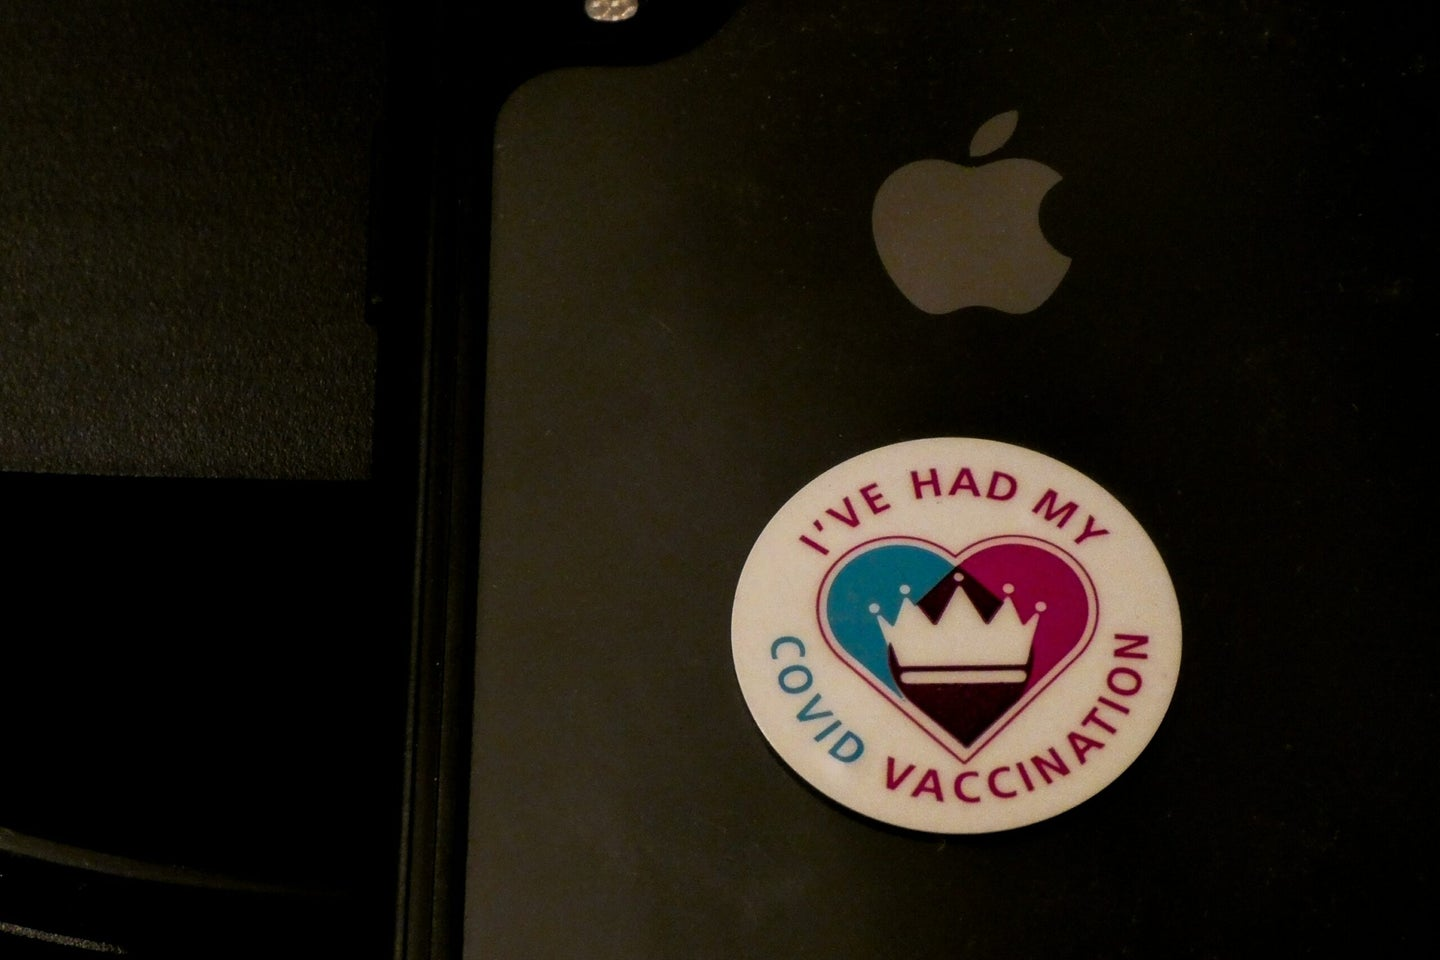 Sticker on laptop that says